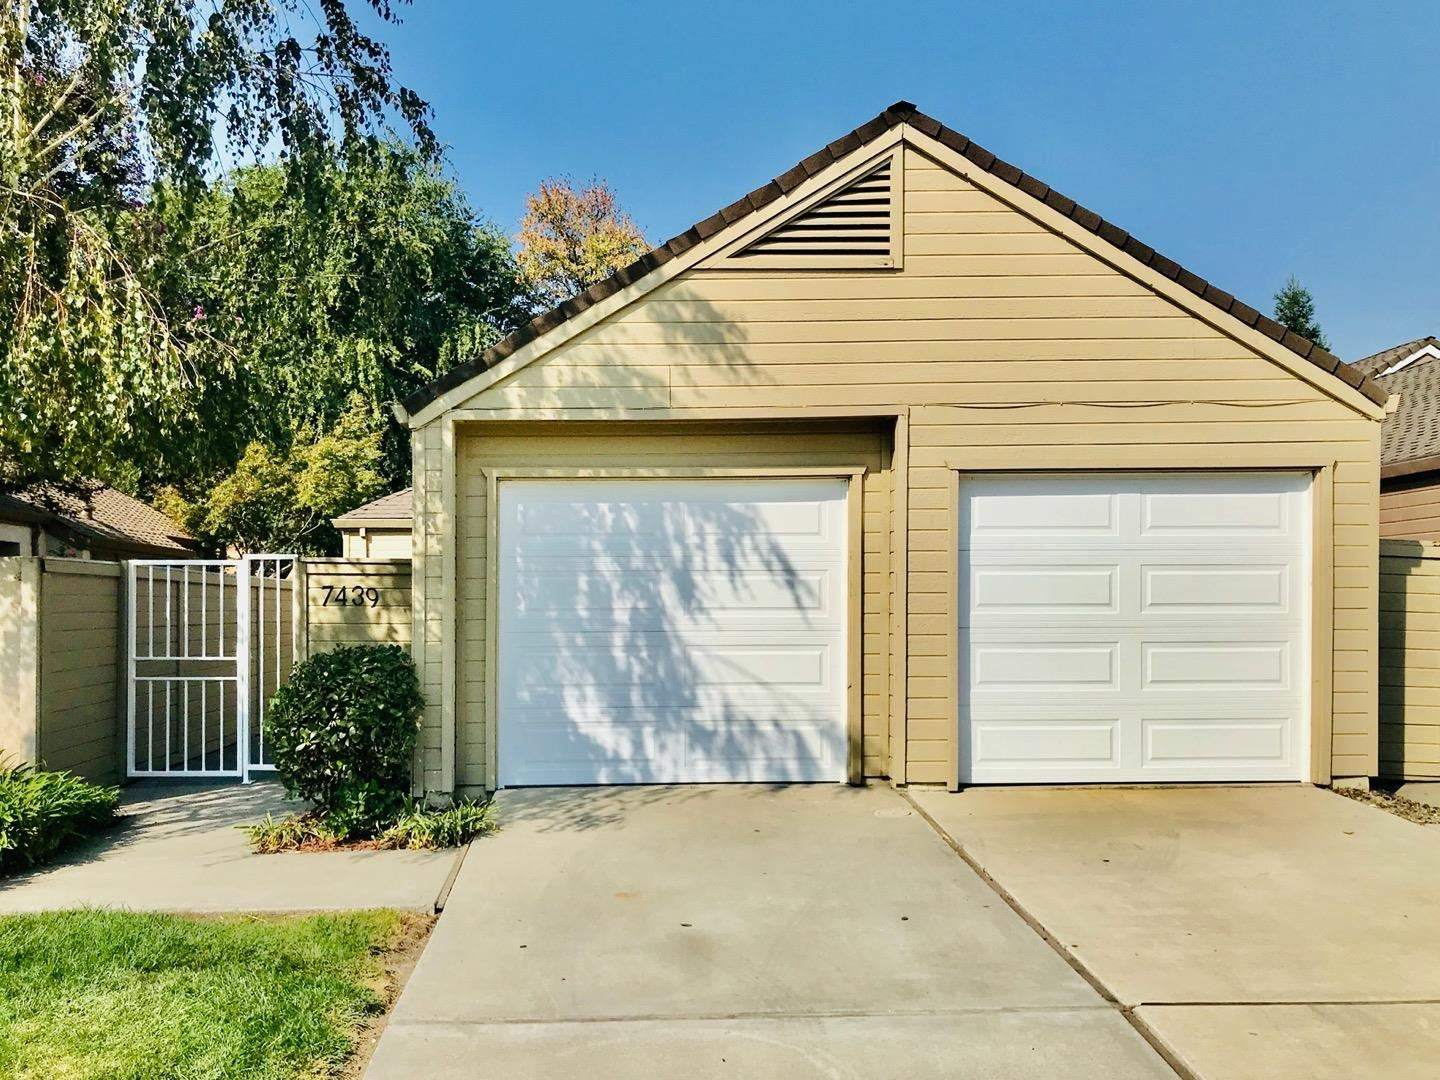 Photo for 7439 Lighthouse DR, STOCKTON, CA 95219 (MLS # ML81811022)